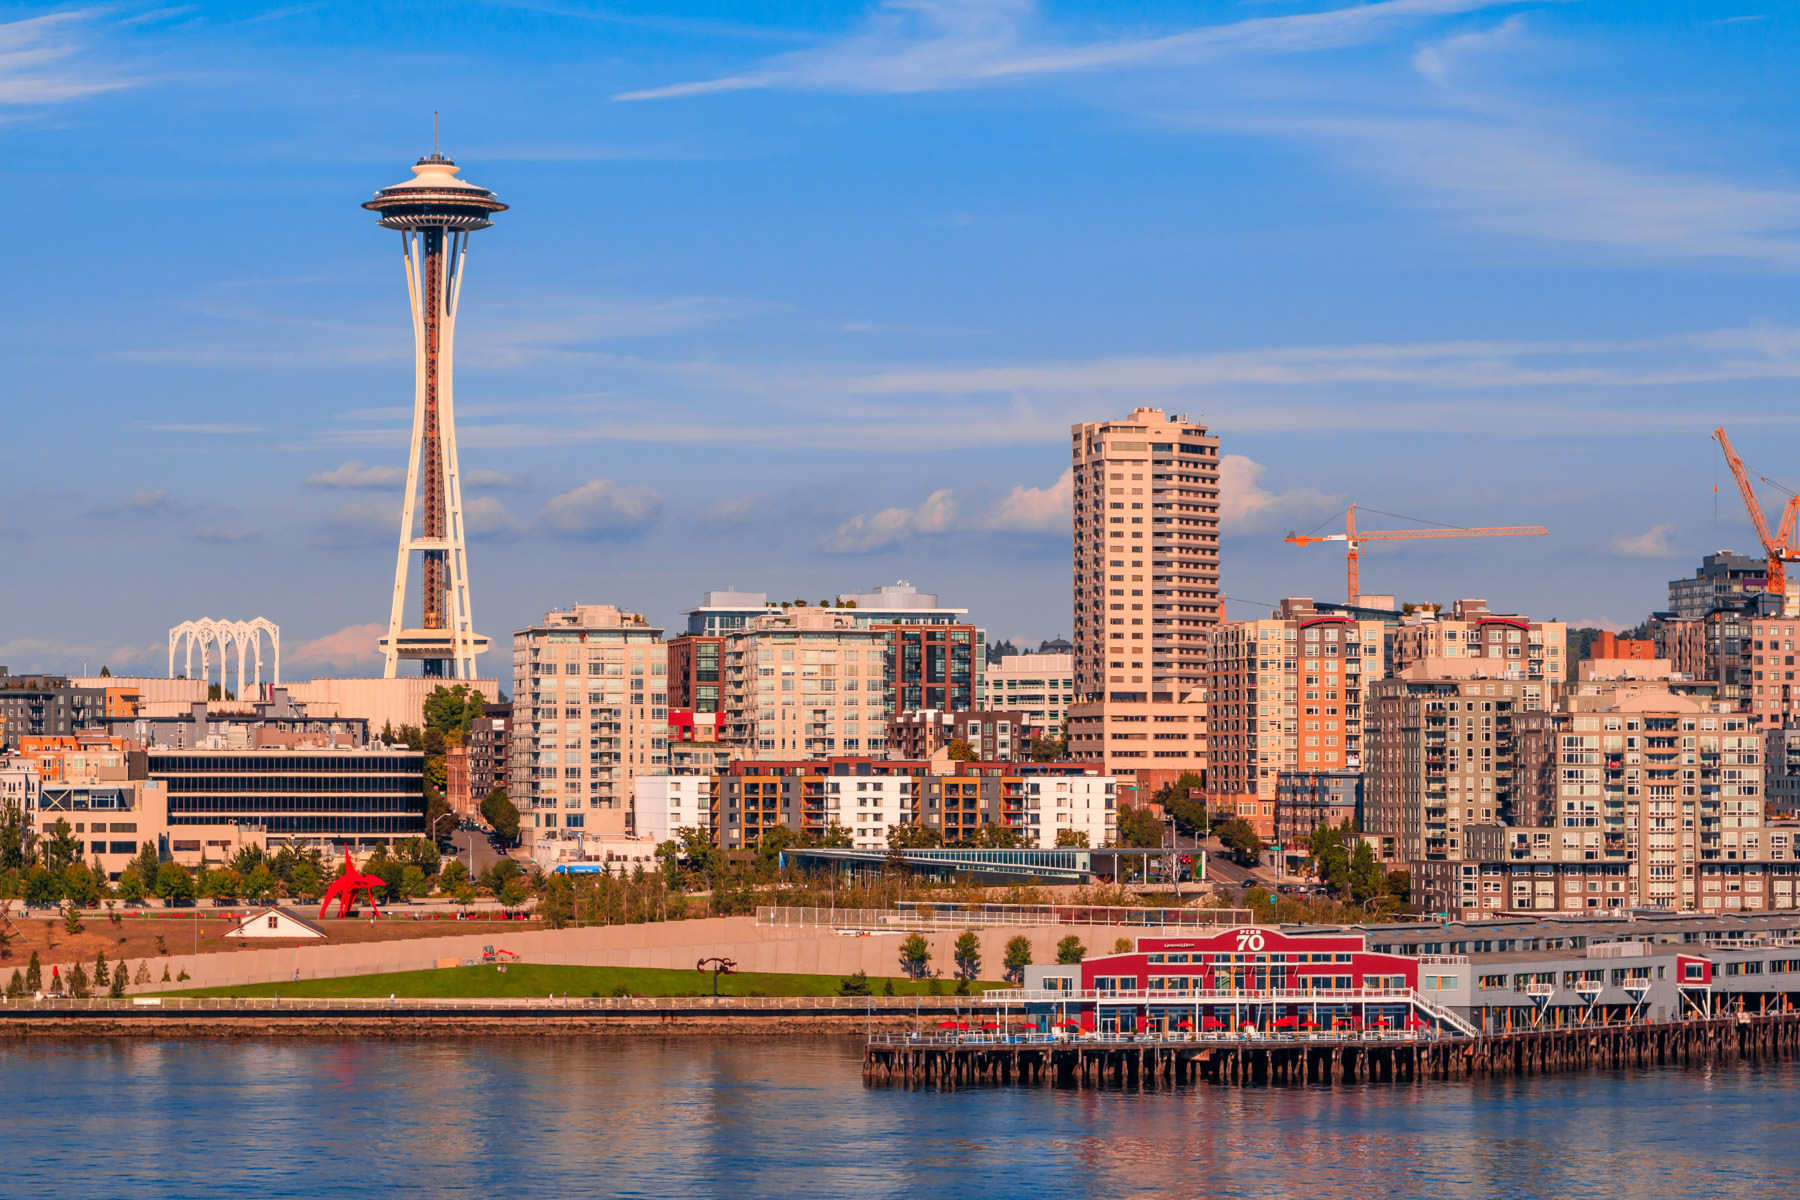 The Seattle Space Needle towers over the Seattle Center and the surrounding Lower Queen Anne neighborhood.